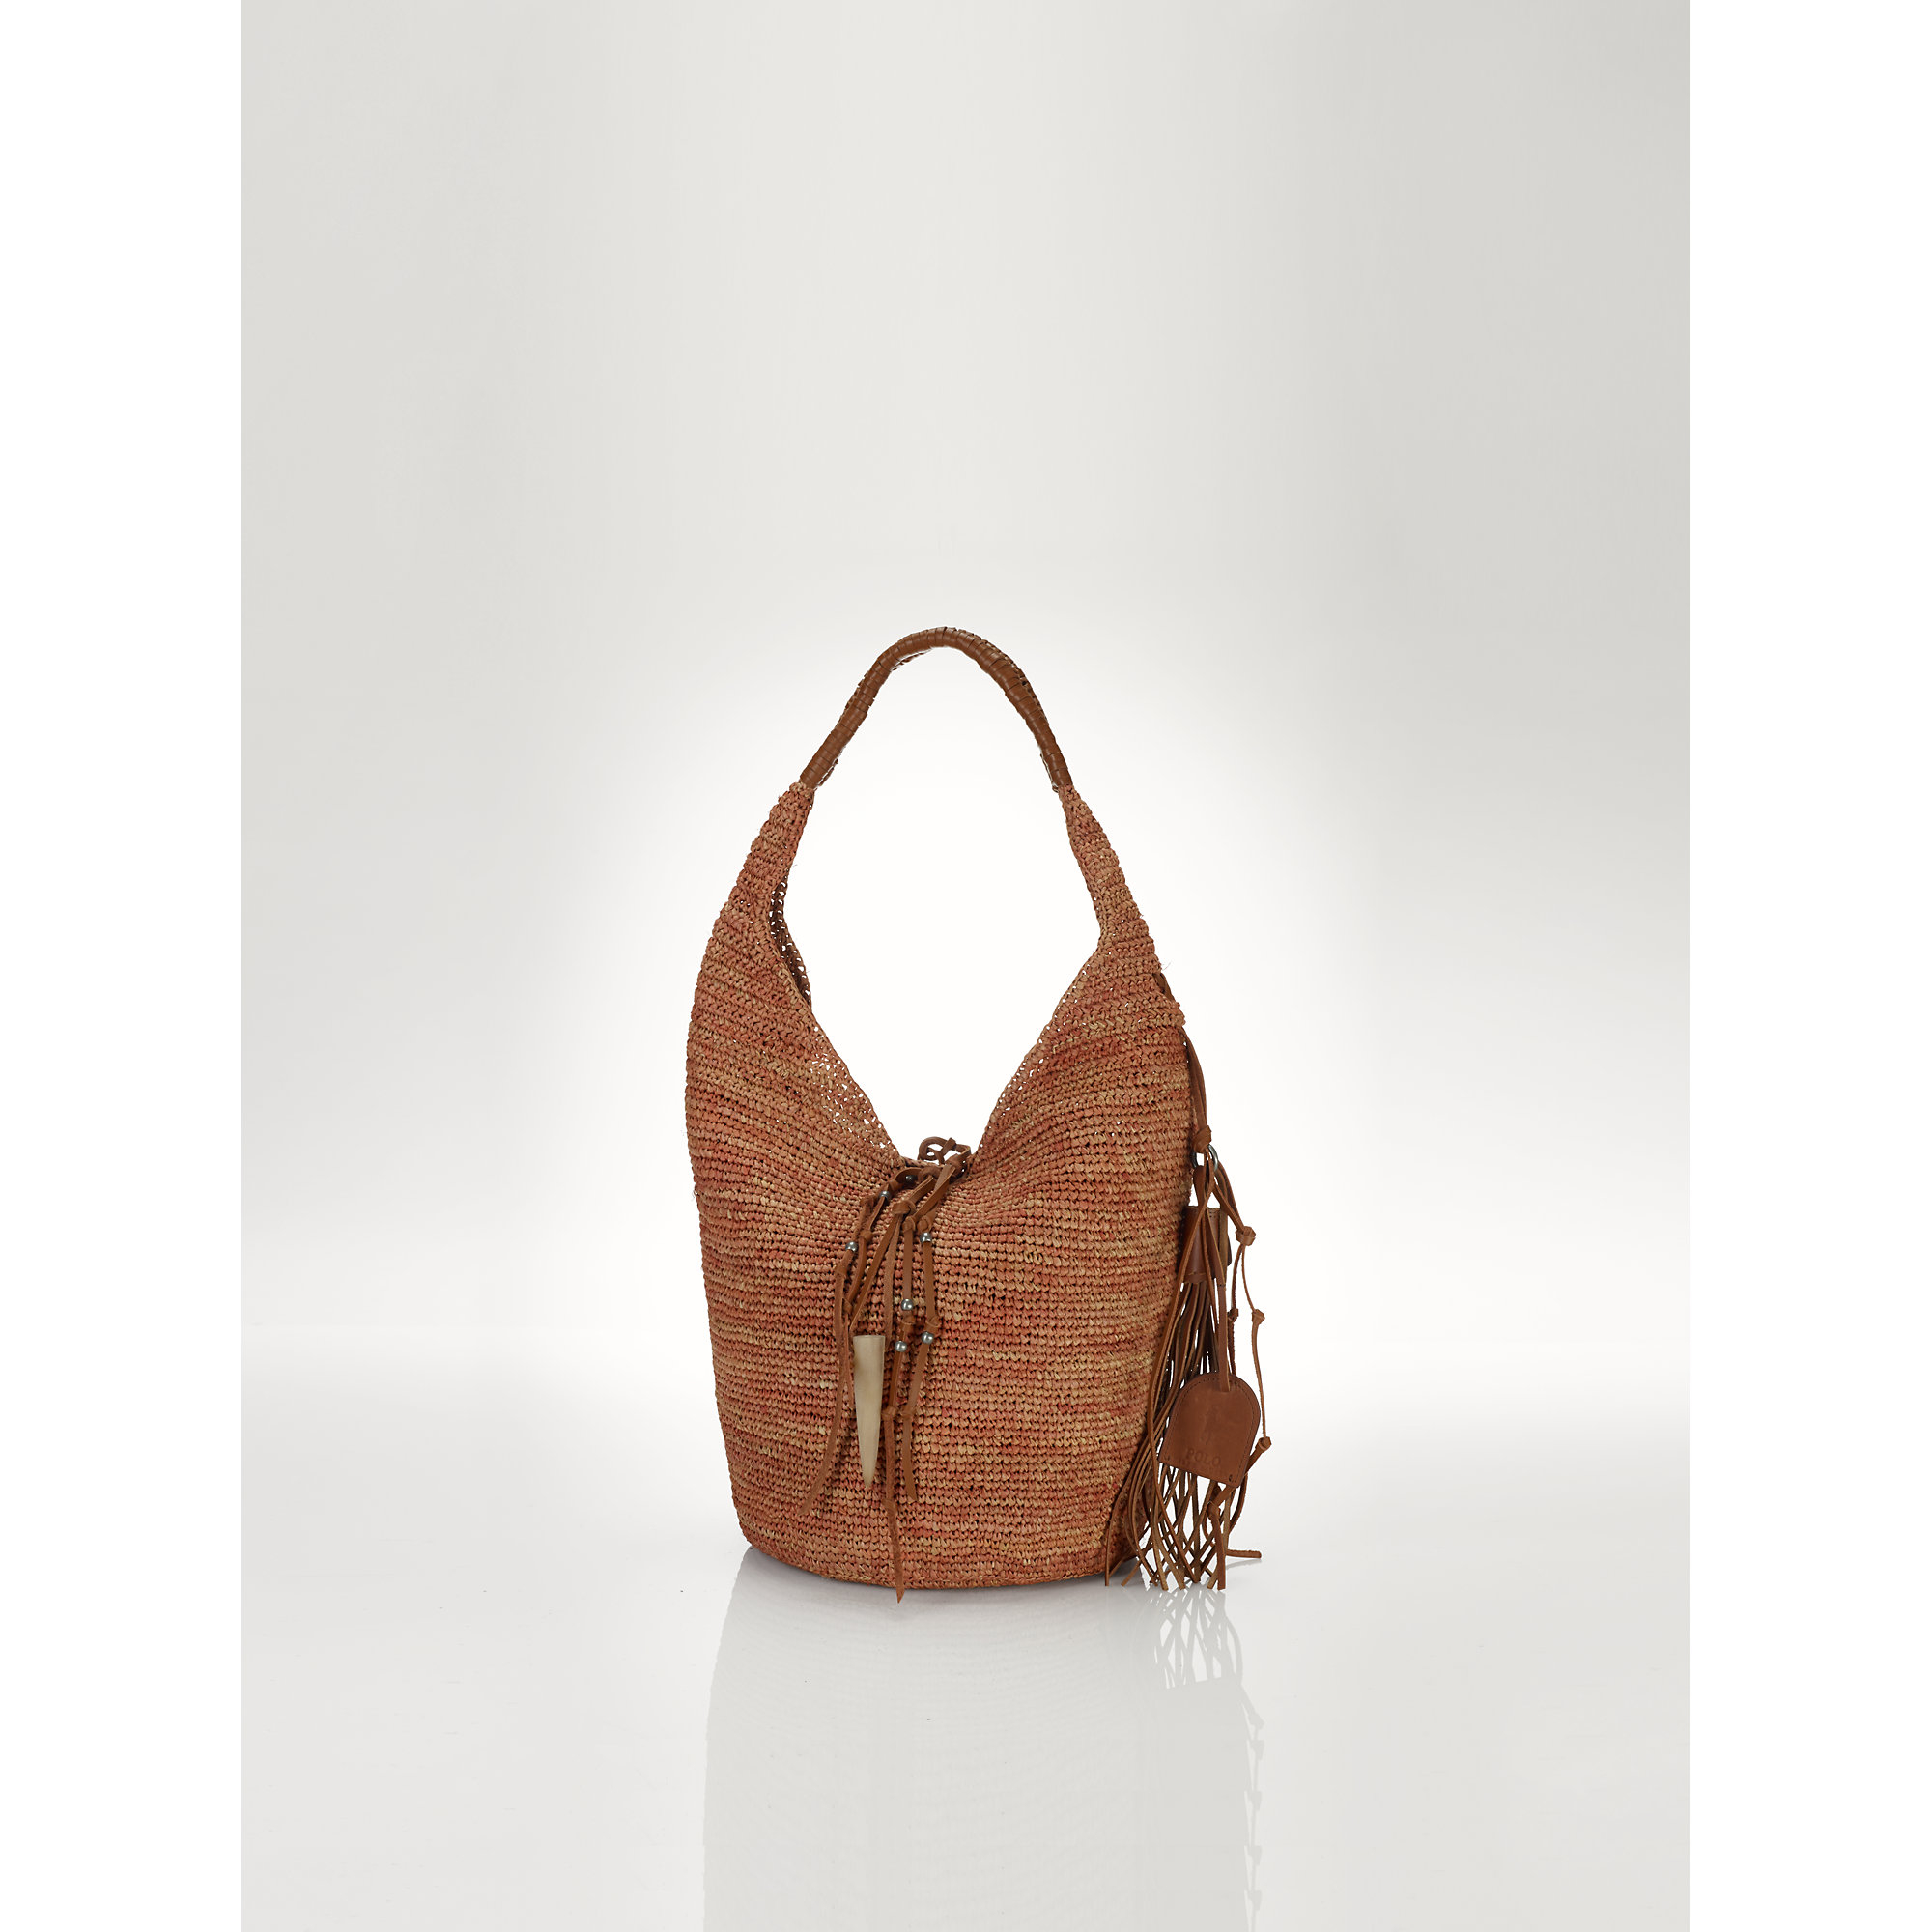 Lyst - Polo Ralph Lauren Straw Sling Bag in Brown a69e522896ebf